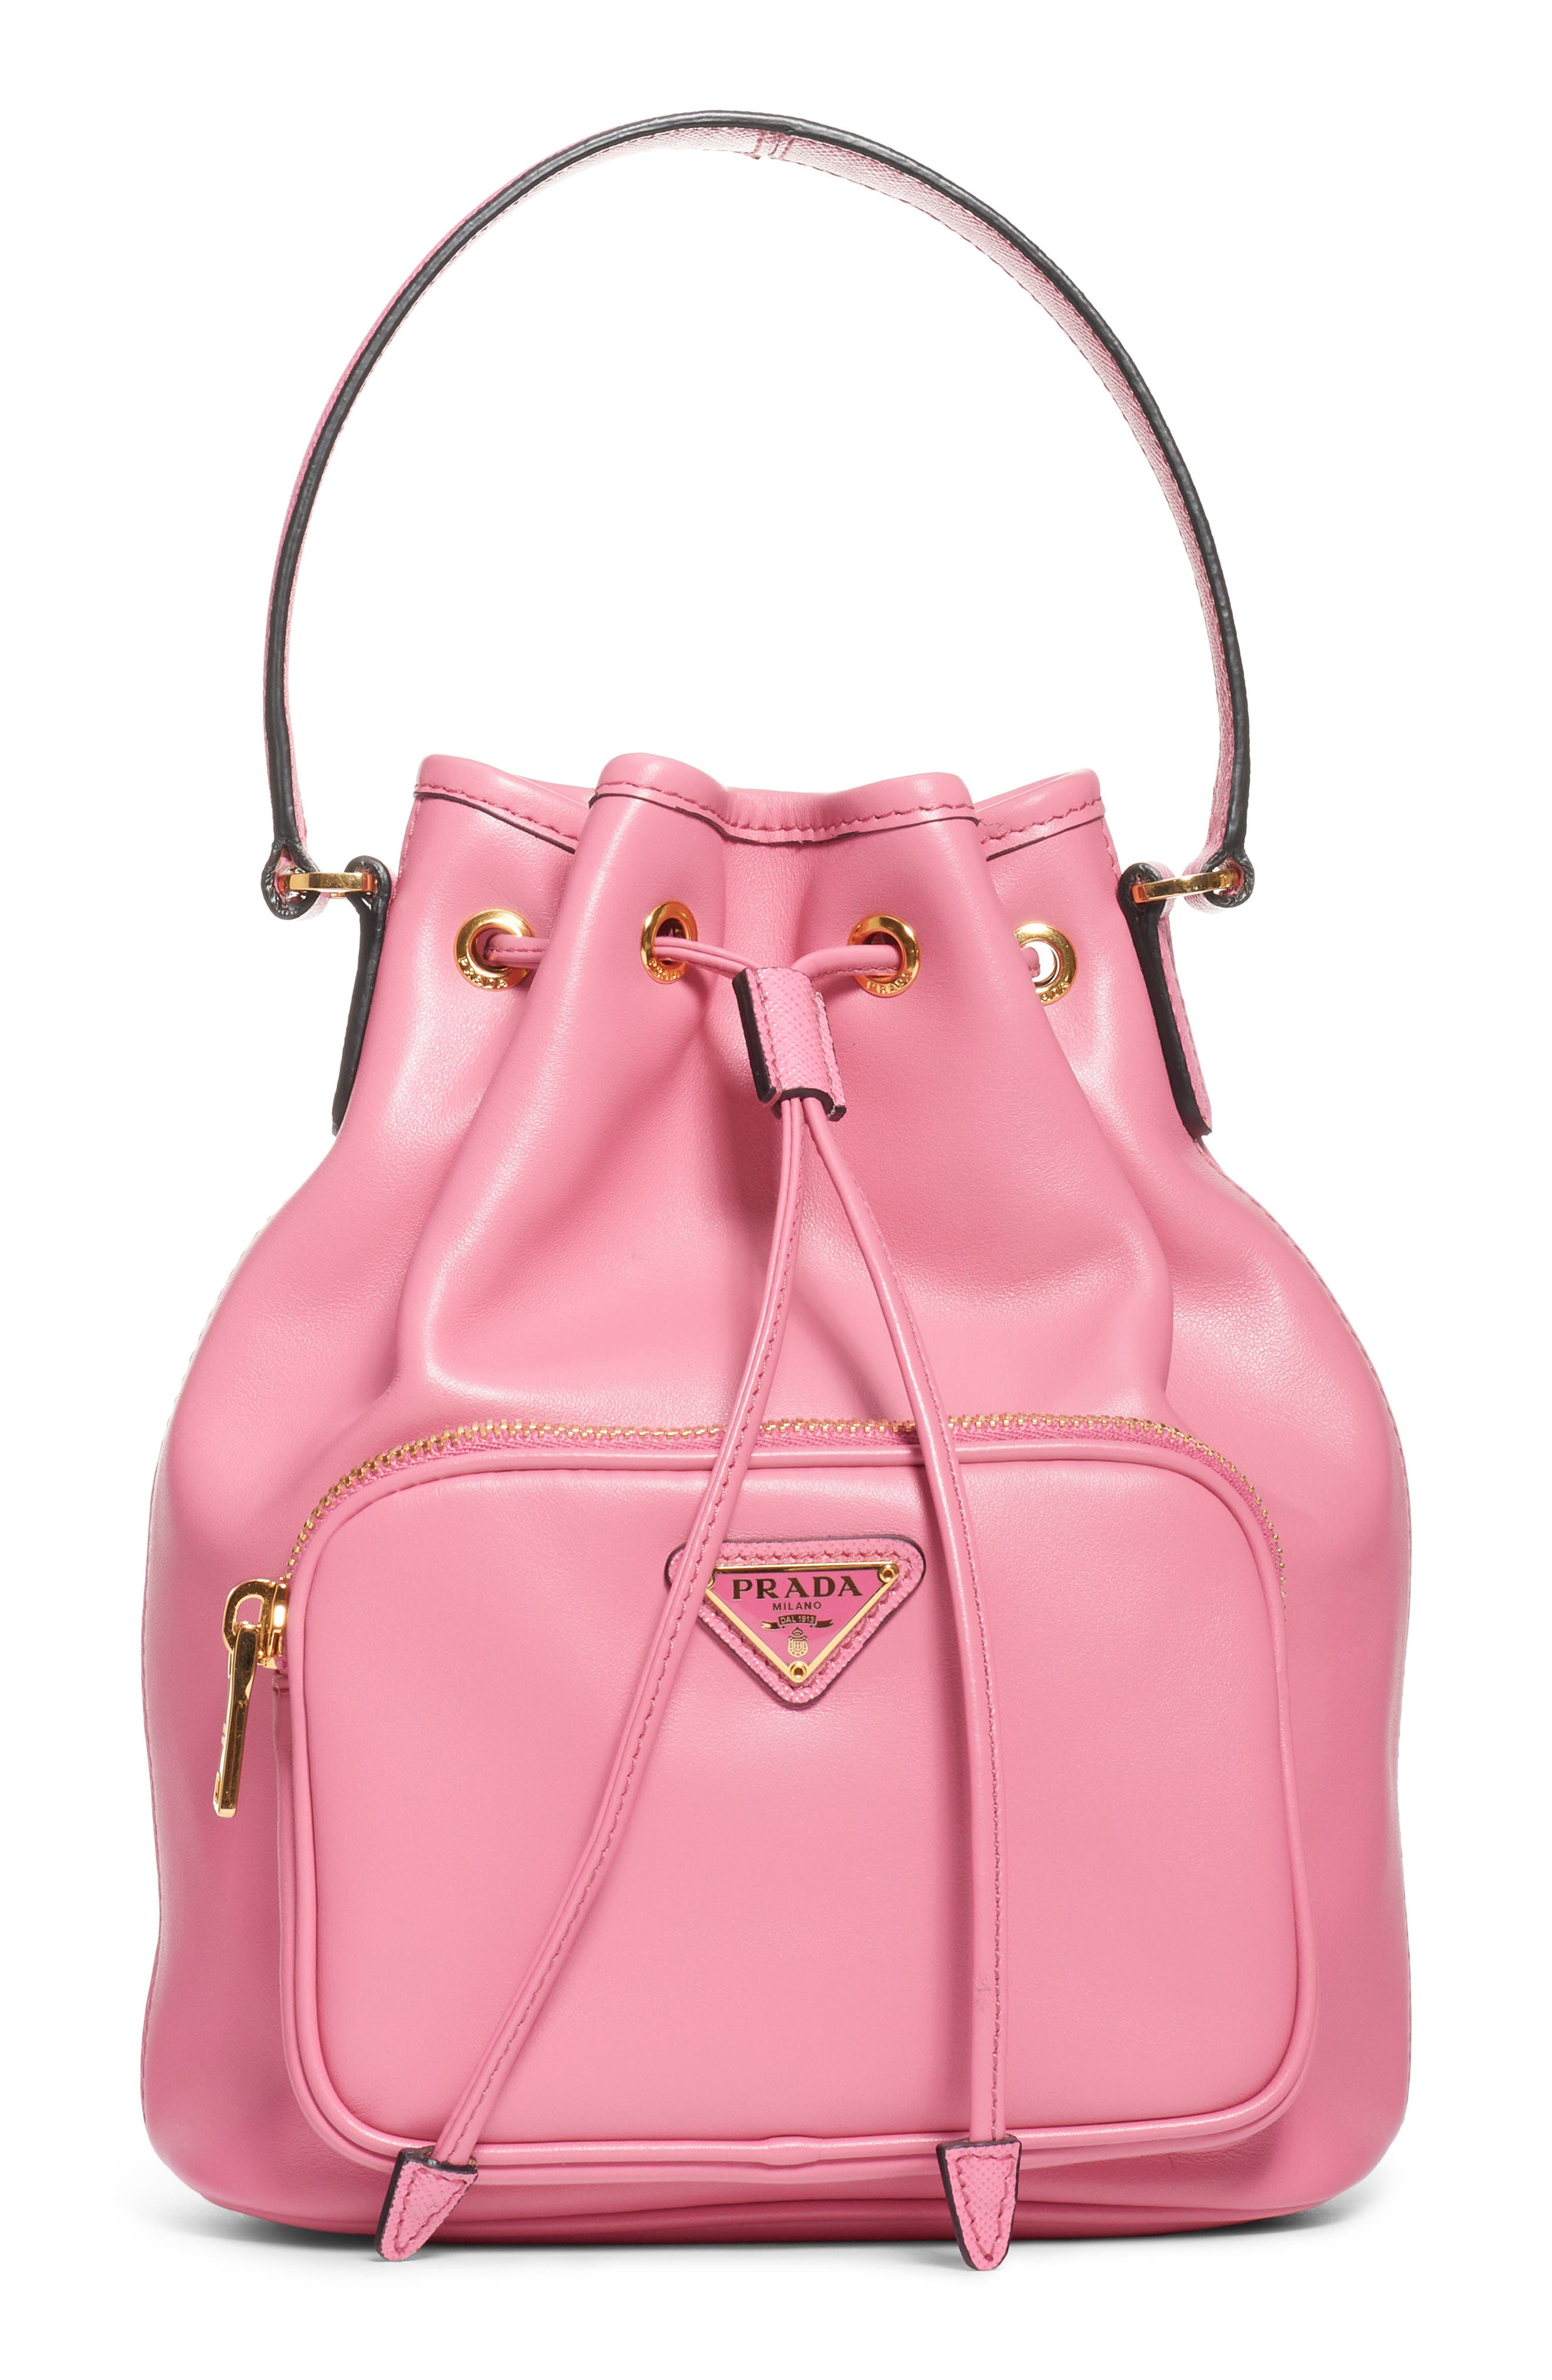 838828df65d4ff promo code for prada purse canada ae8f1 7814c